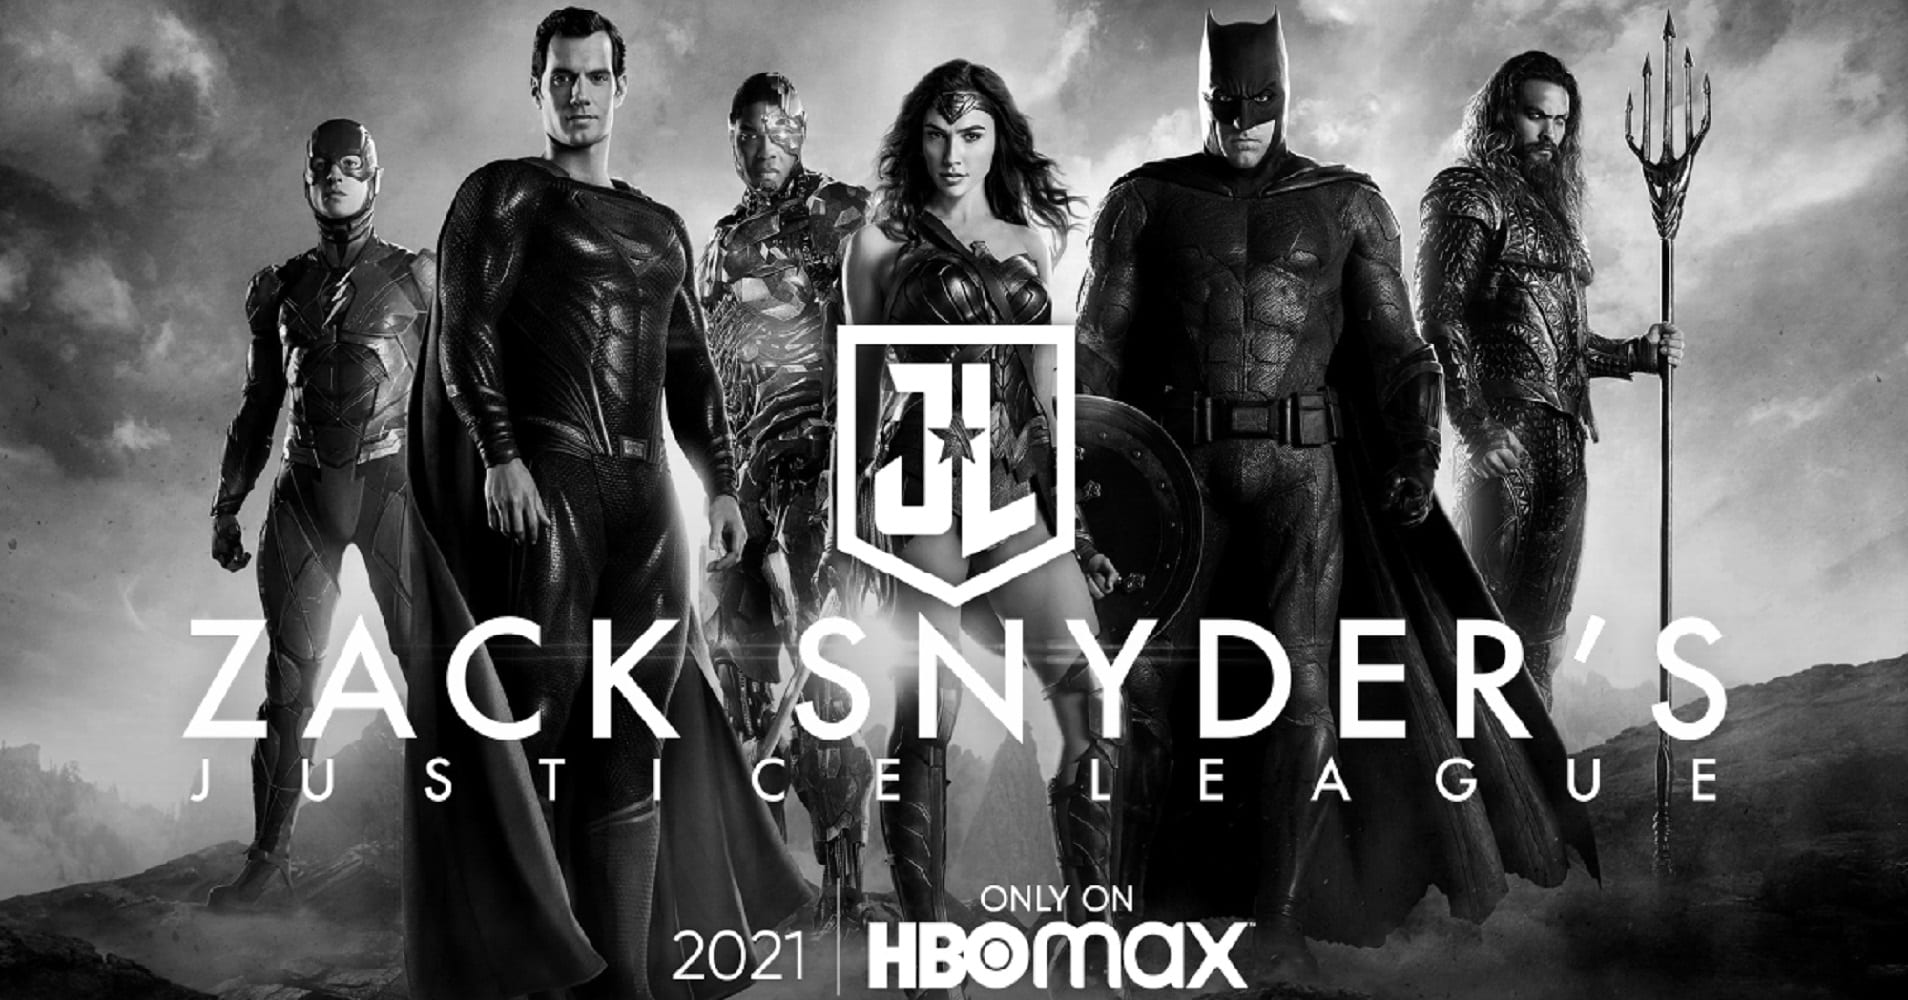 HBO Max Zack Snyder Cut Justice League Featured